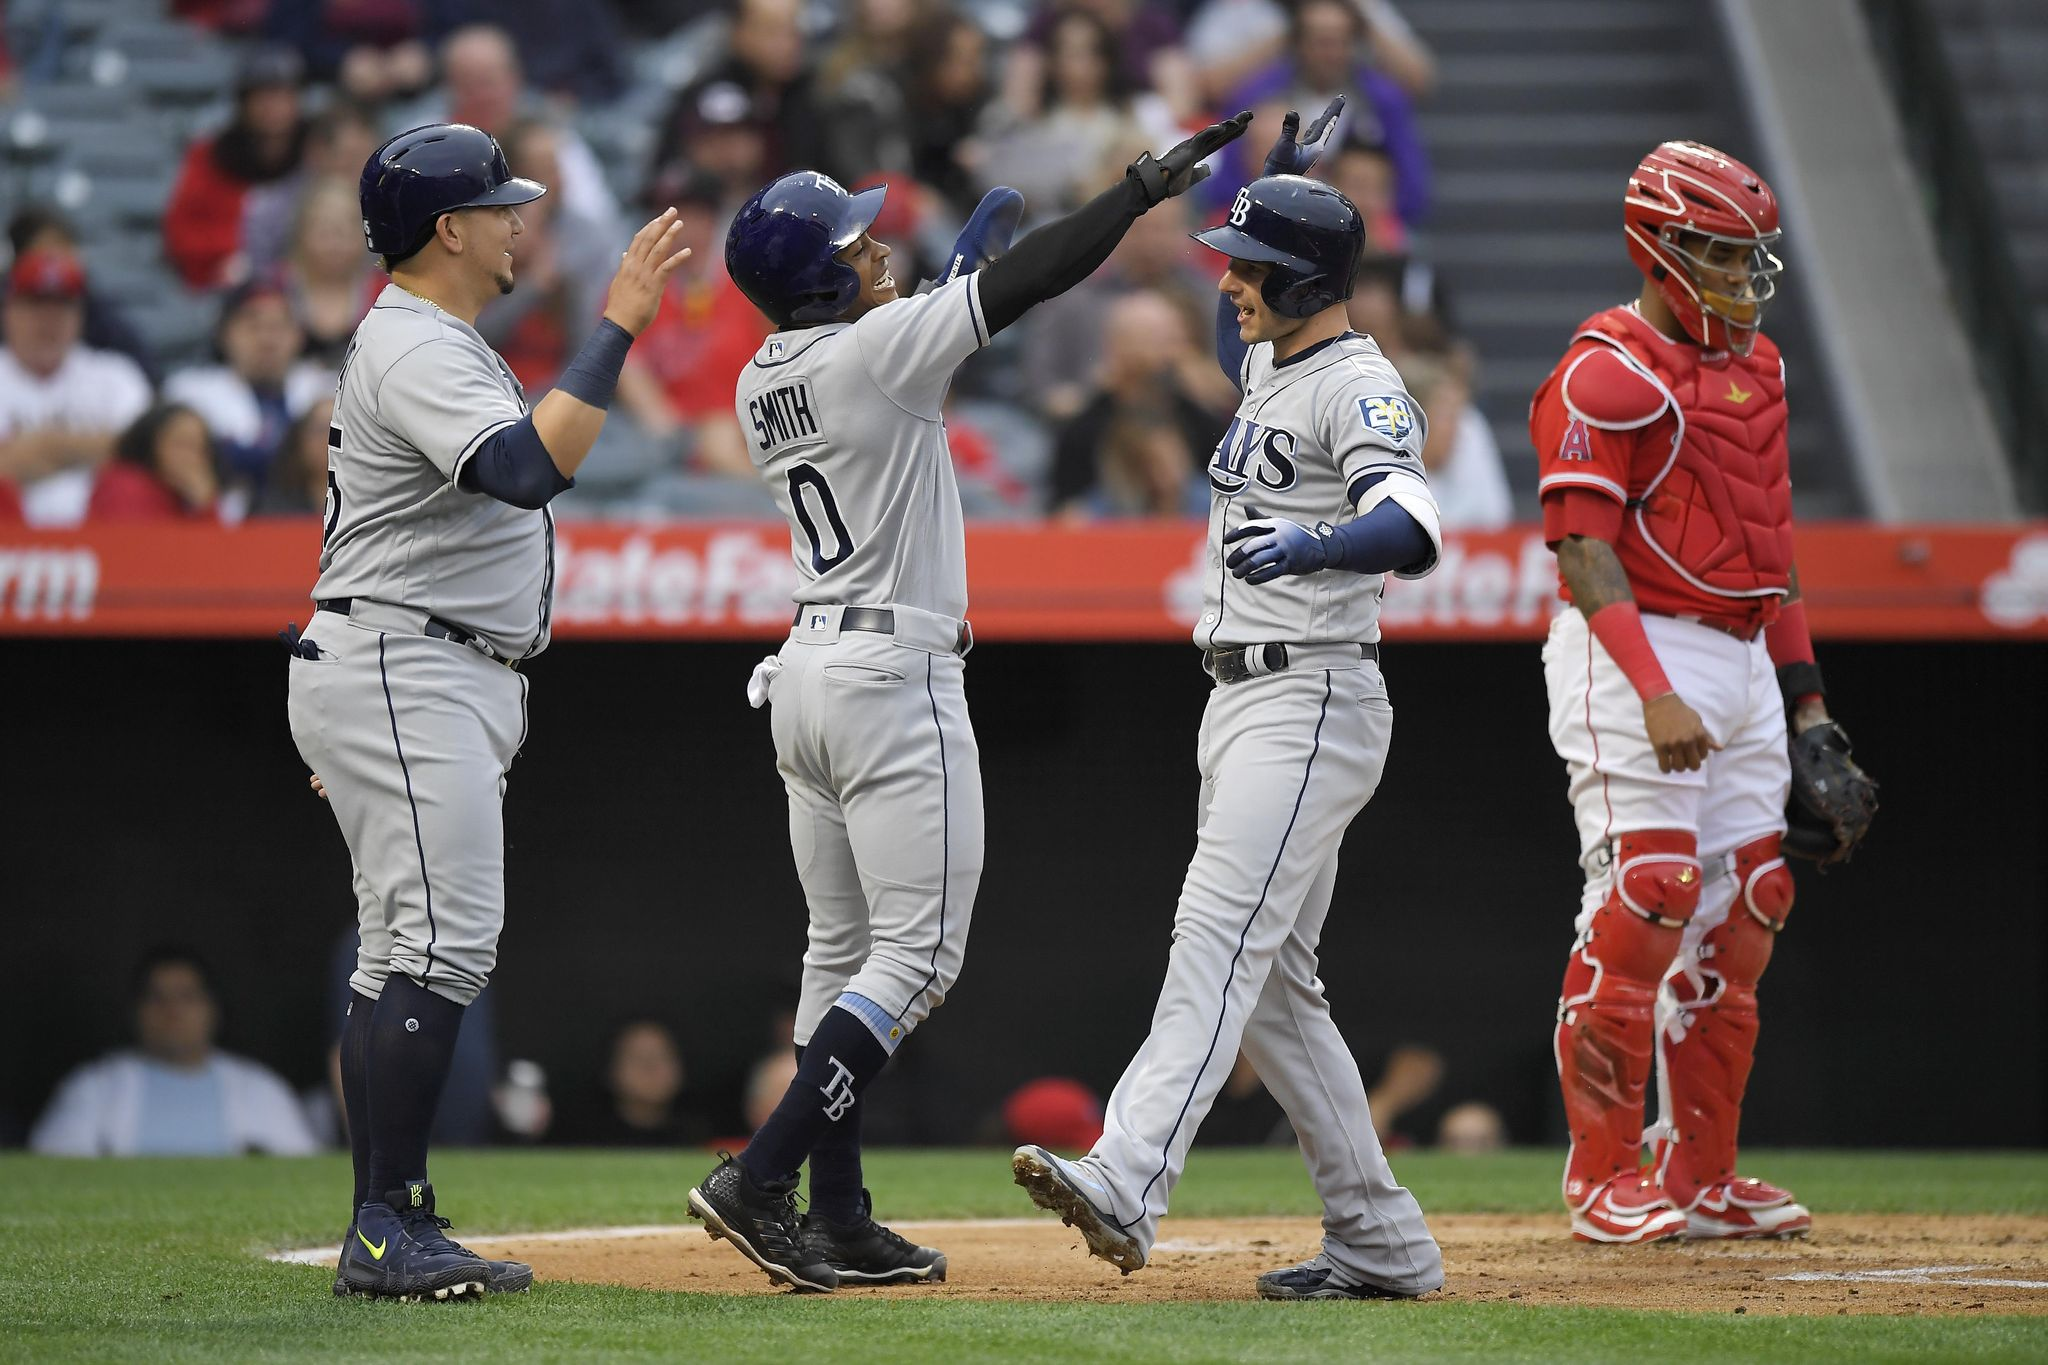 Rays_angels_baseball_83481_s2048x1365